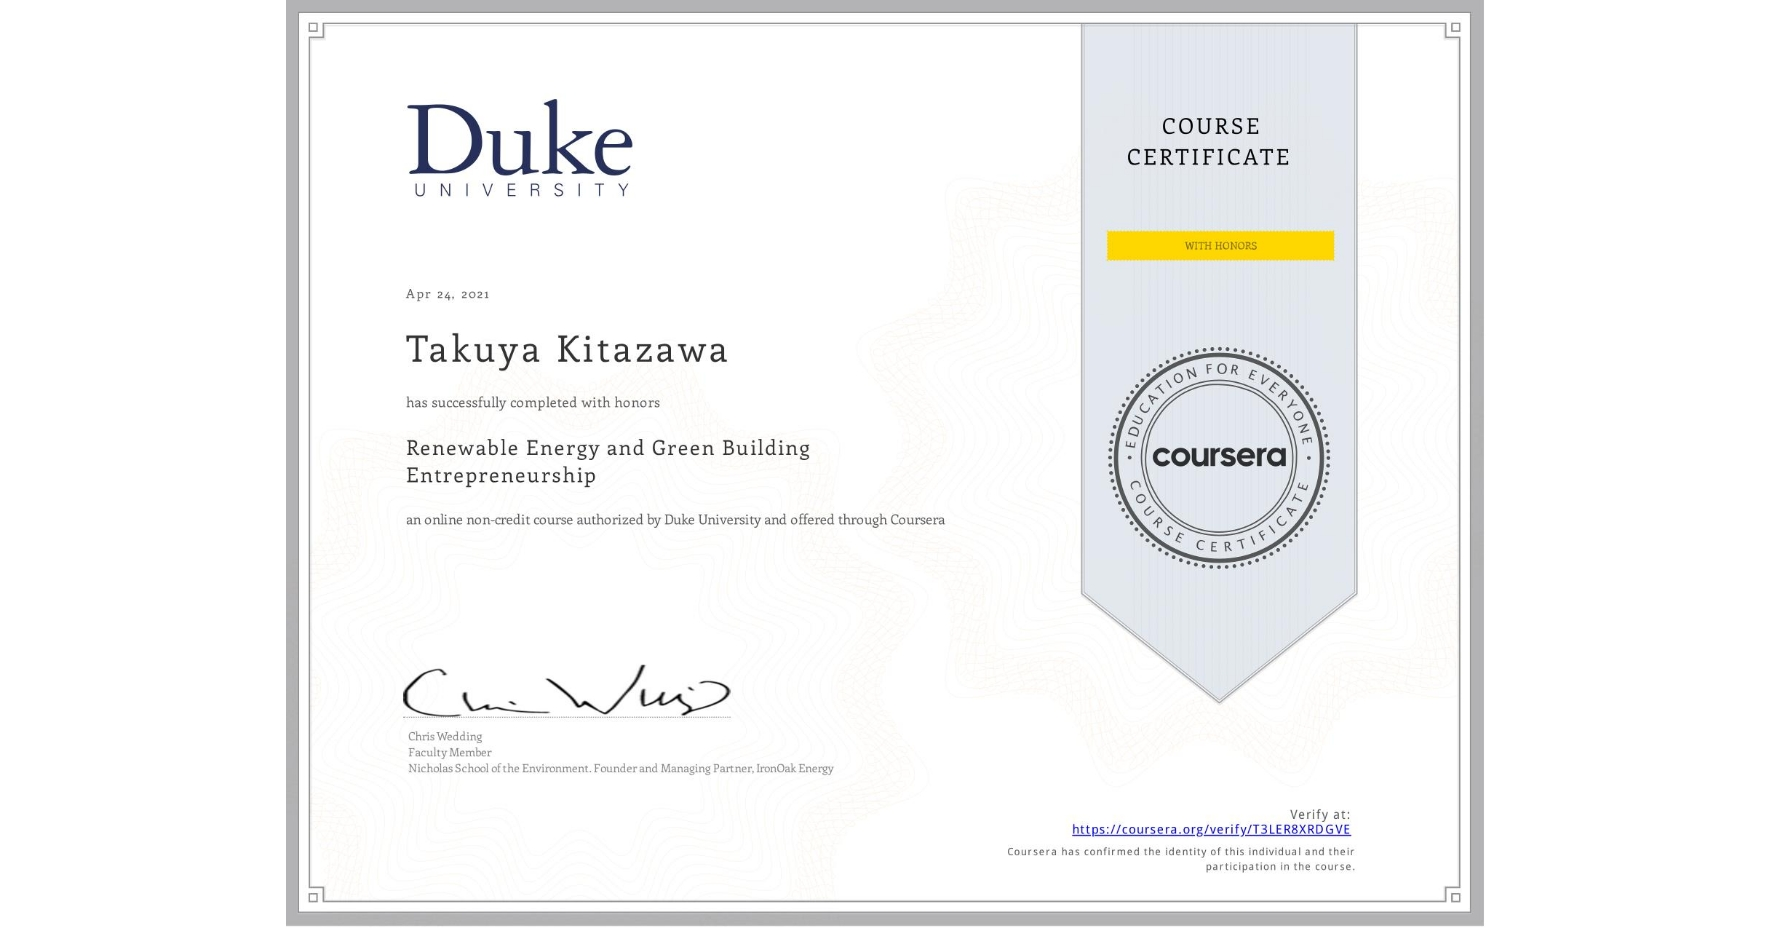 View certificate for Takuya Kitazawa, Renewable Energy and Green Building Entrepreneurship, an online non-credit course authorized by Duke University and offered through Coursera